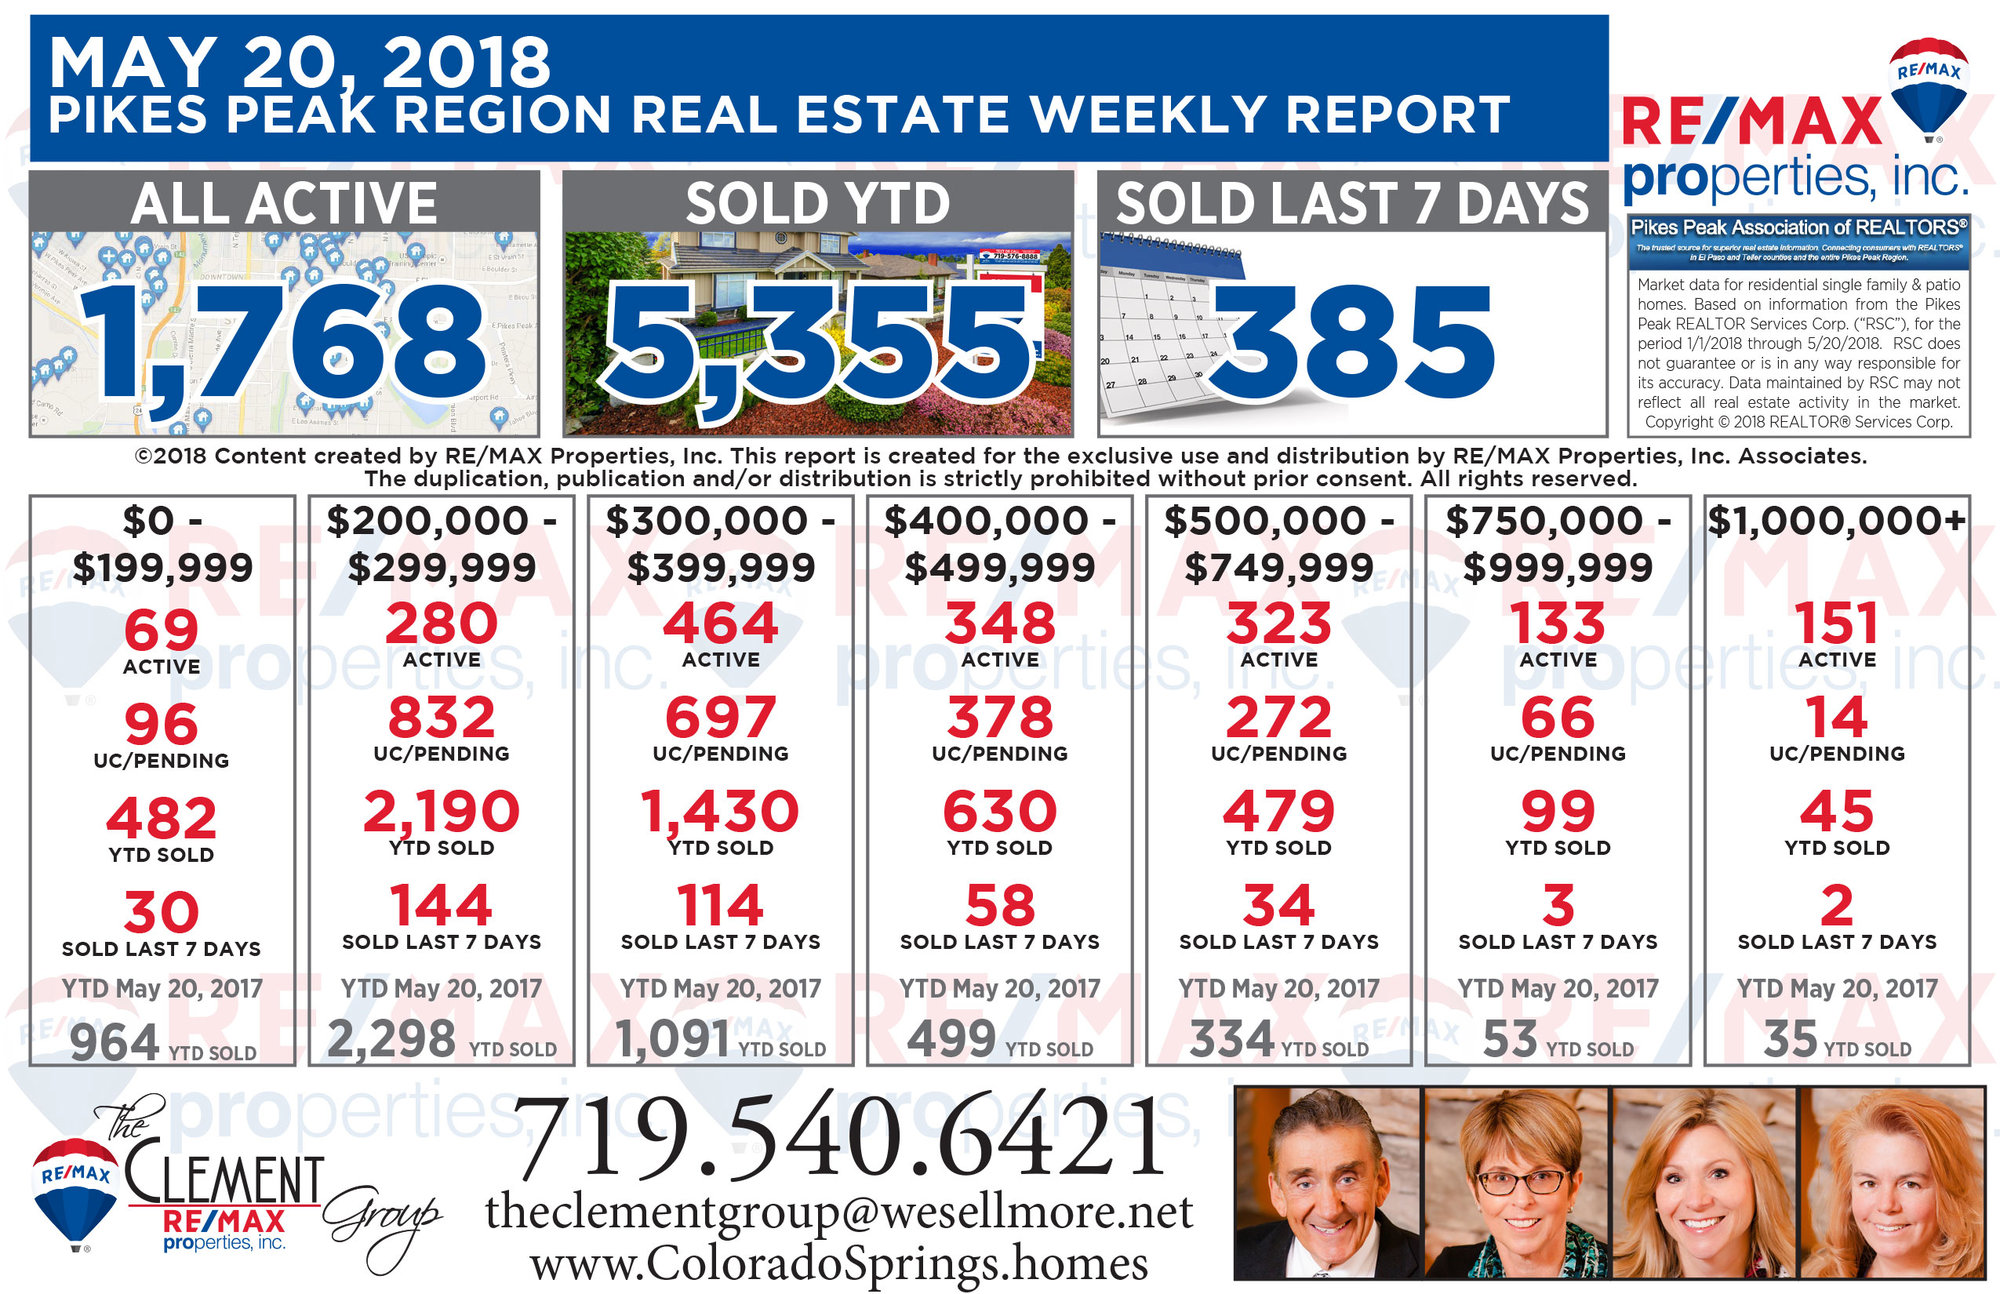 Colorado Springs Real Estate Market Weekly Update - May 20, 2018